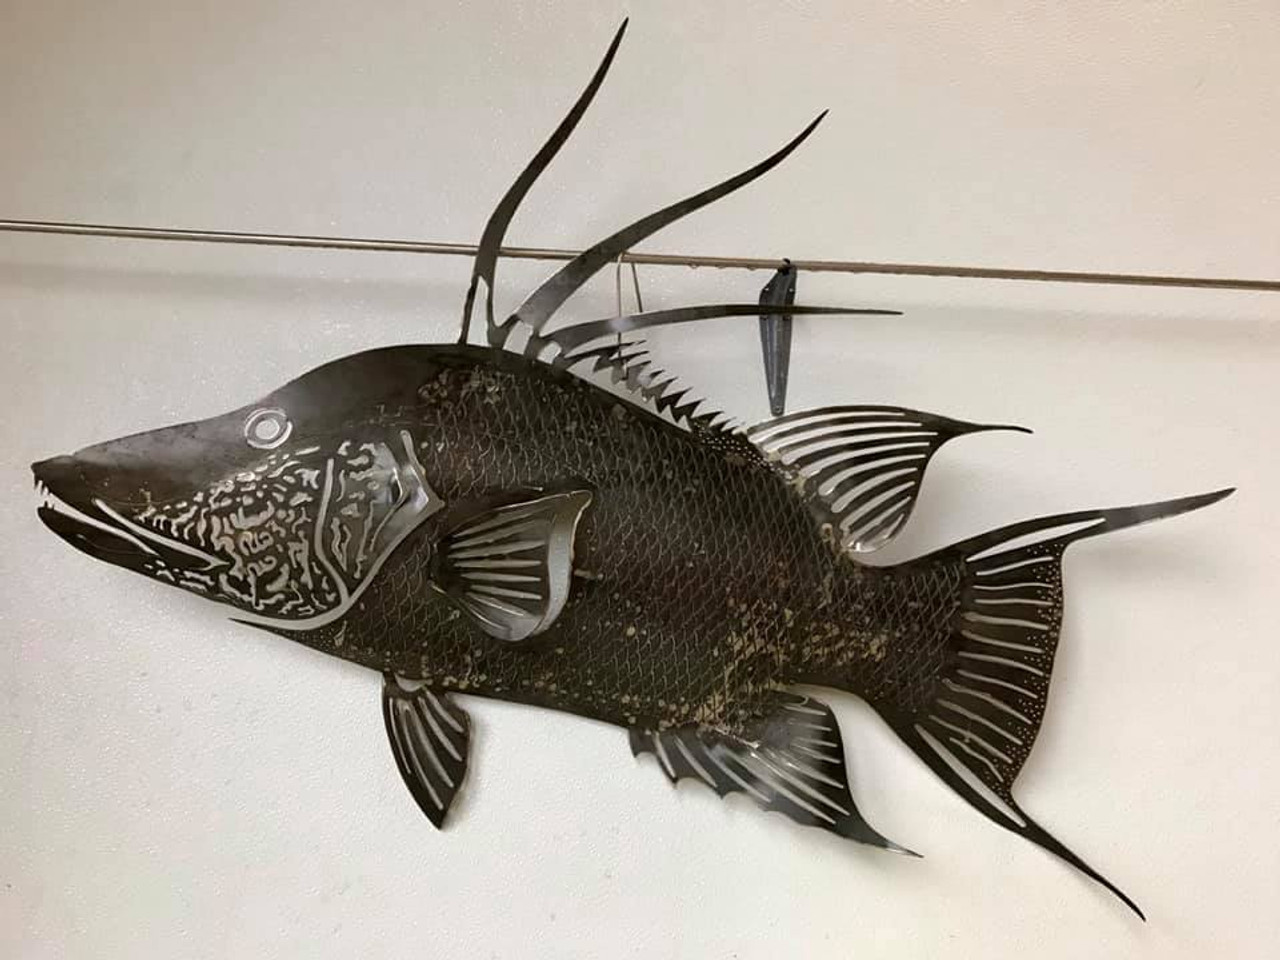 Hog Snappe Fish Stainless Steel Wall Decor – Lifestyle